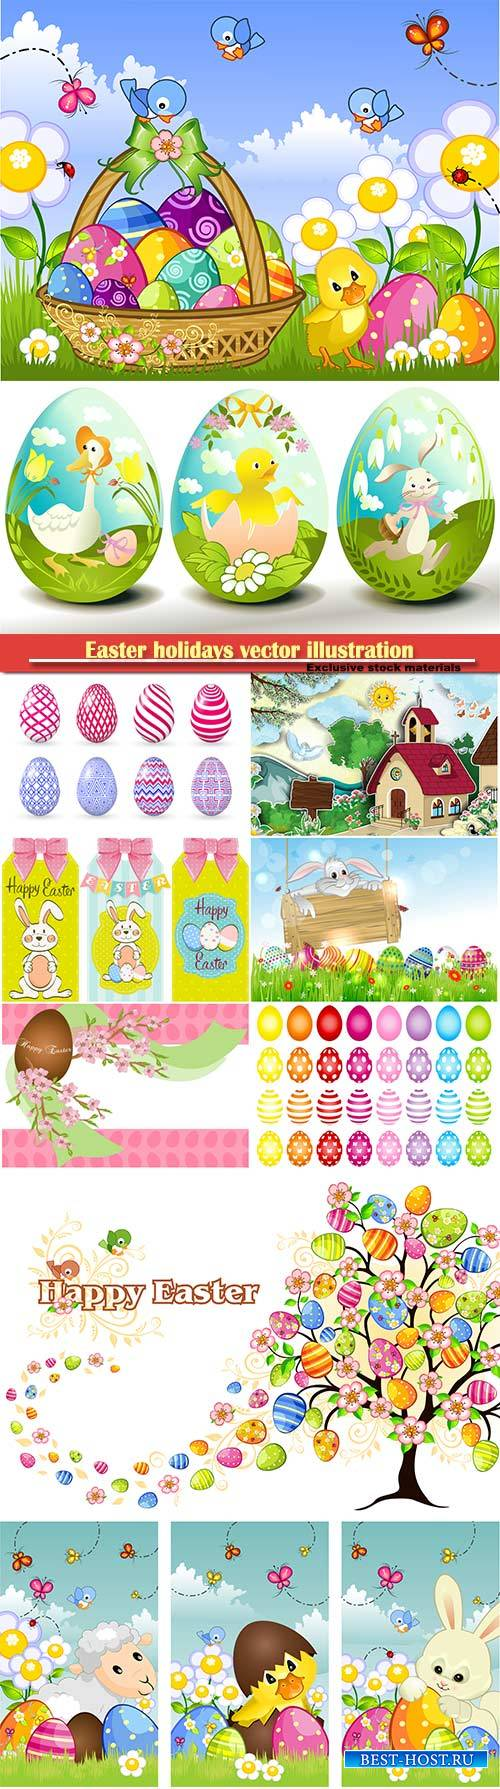 Easter holidays vector illustration # 10